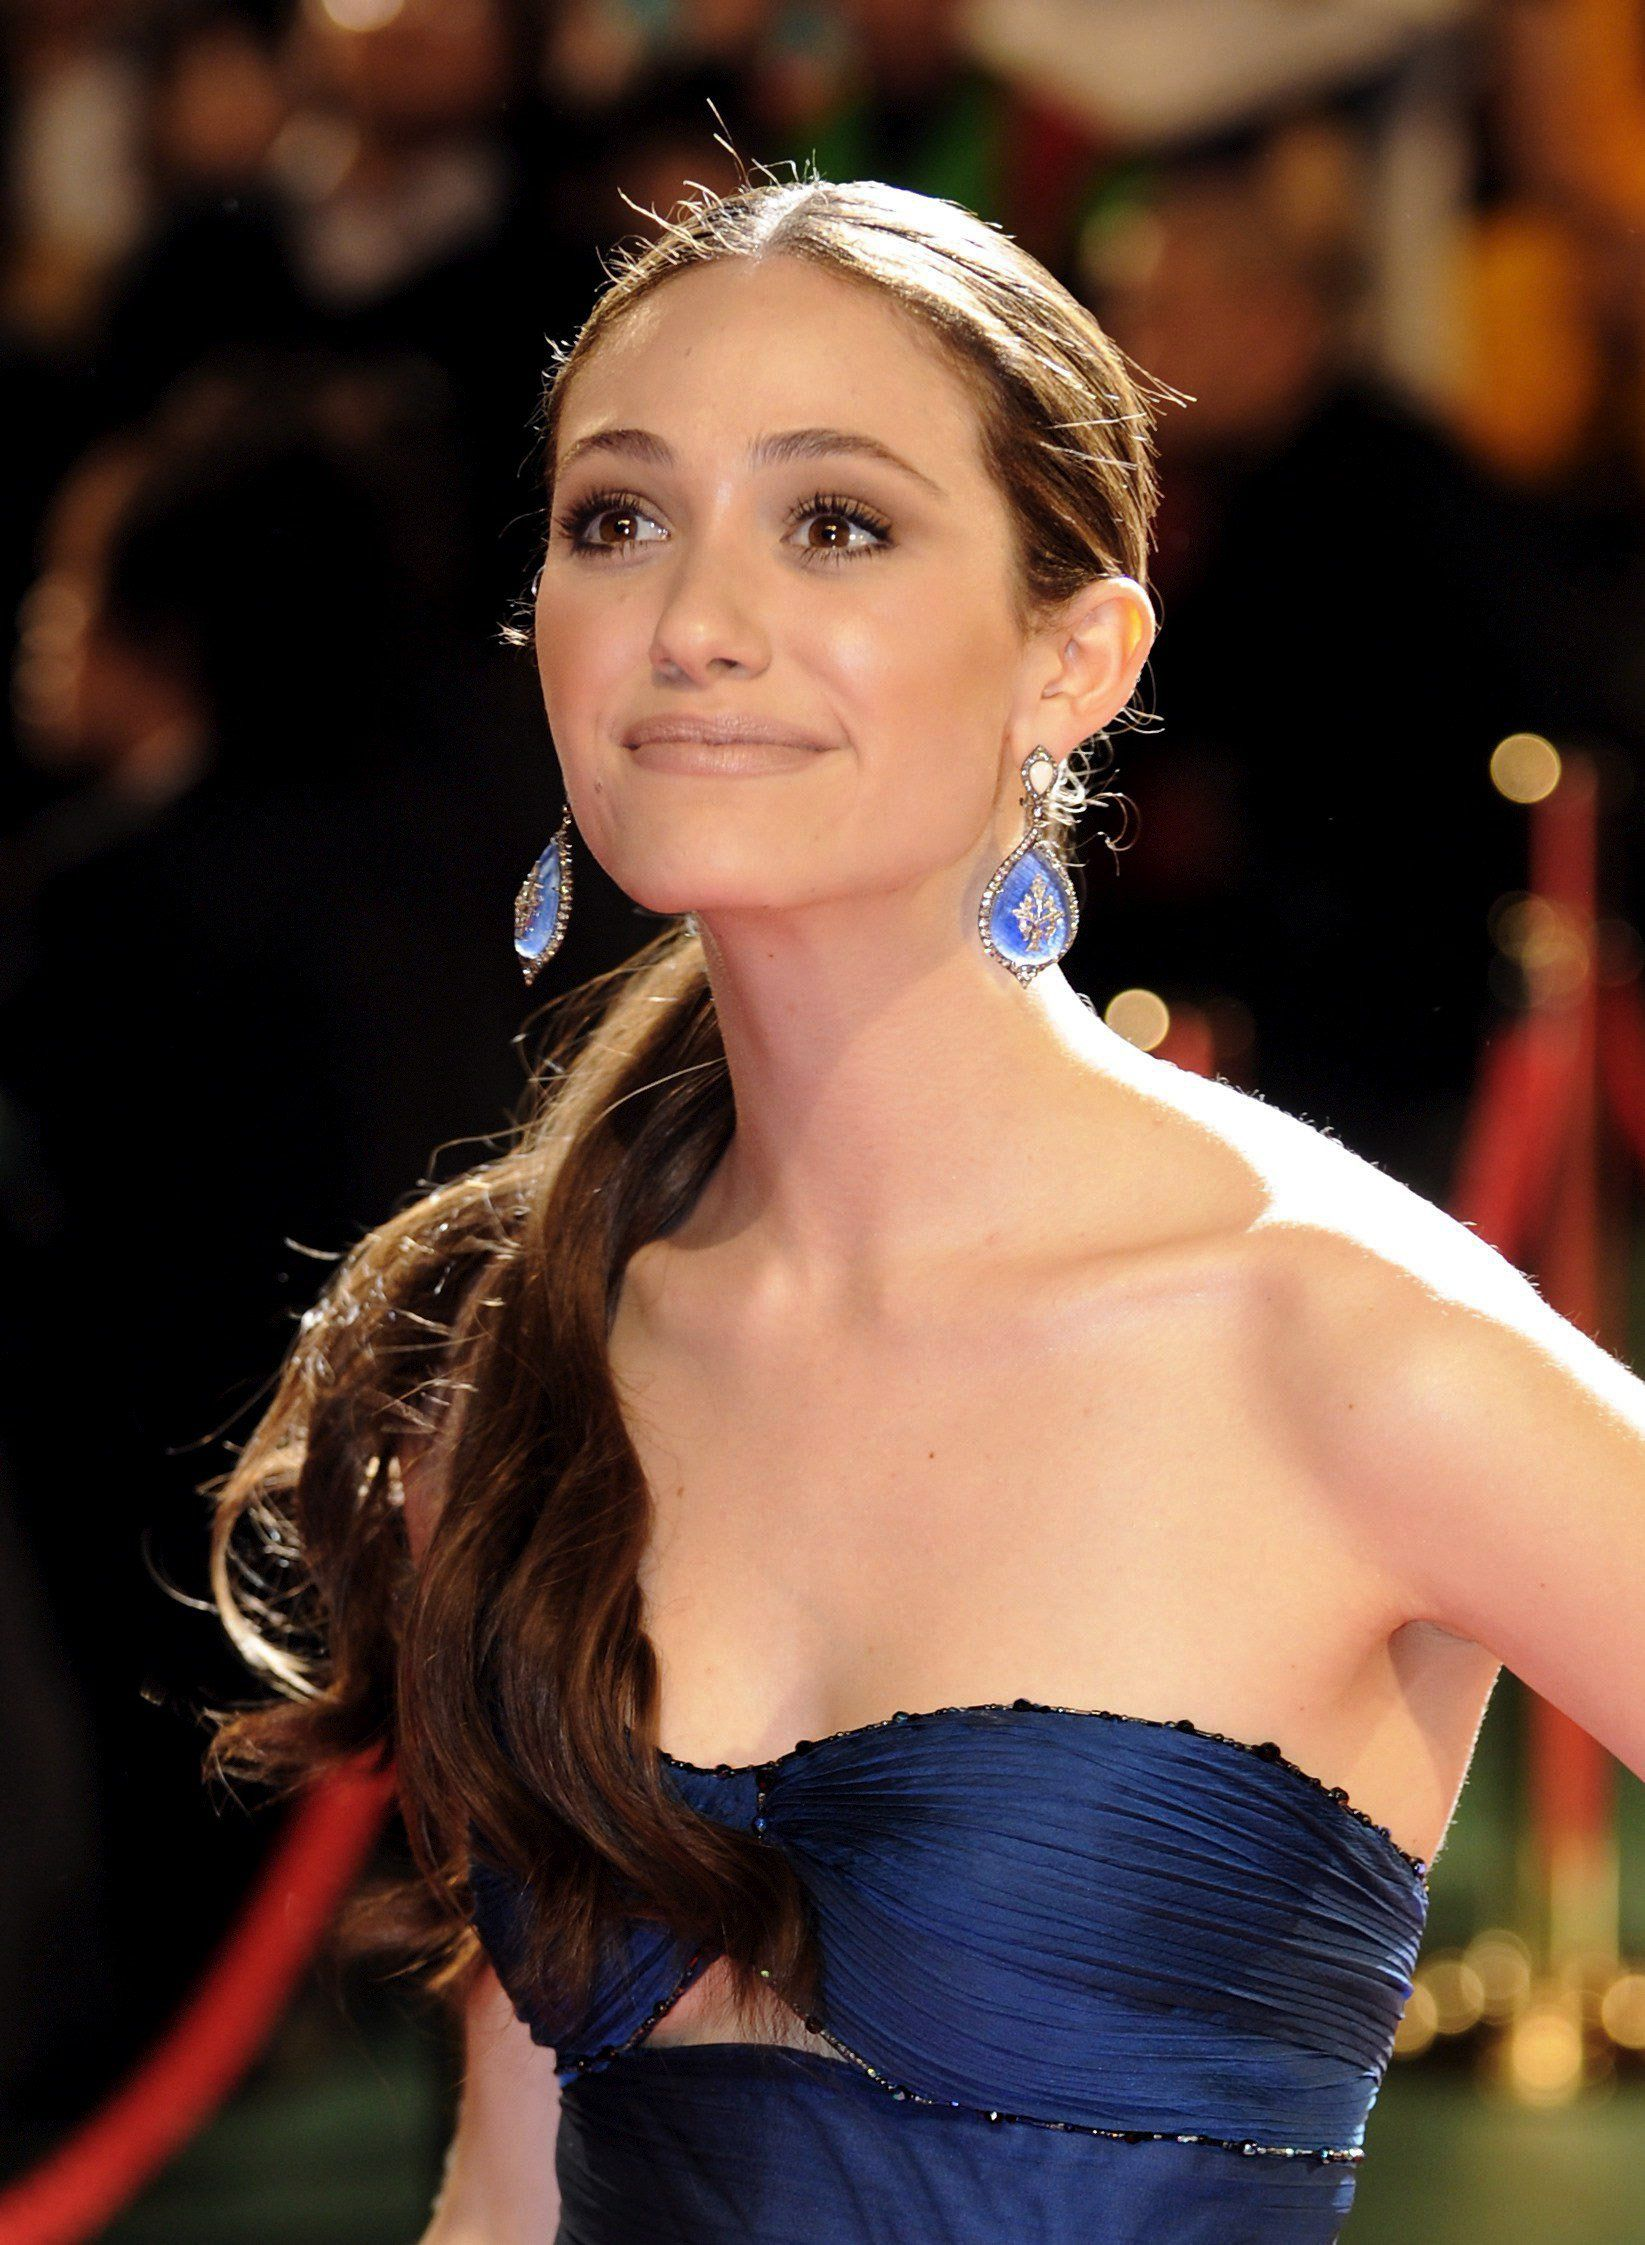 Emmy Rossum Aka Fiona Gallagher On Shameless 3 Emmy Rossum Style Emmy Rossum Sheer Beauty